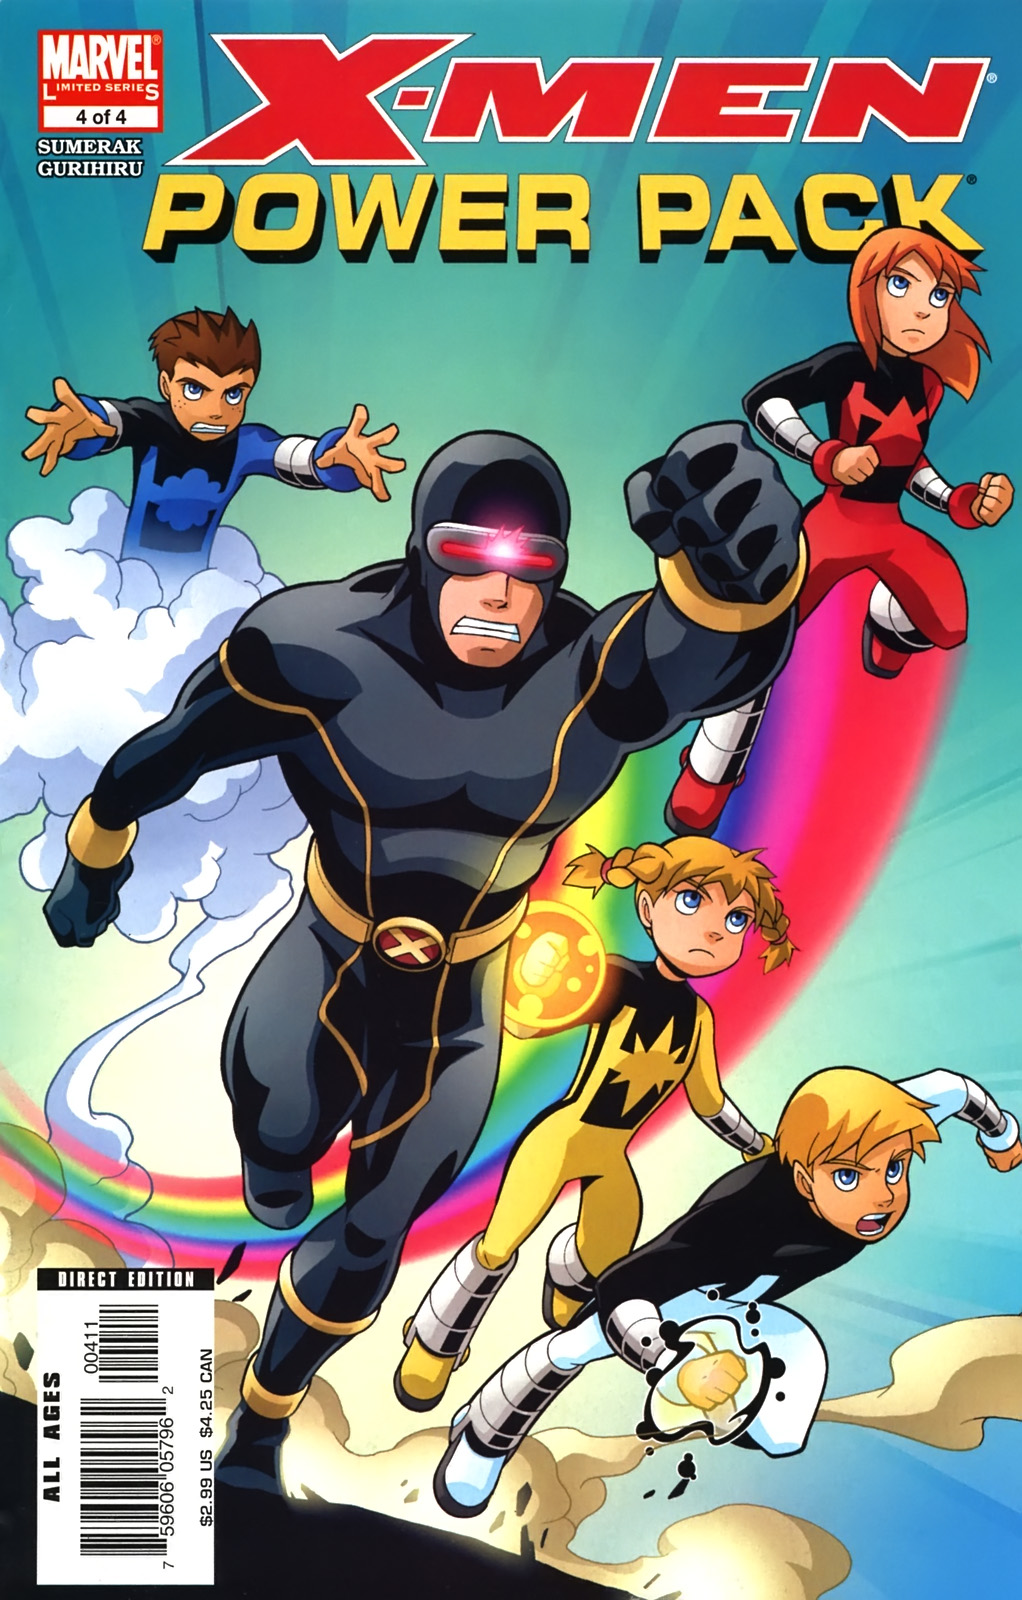 Read online X-Men and Power Pack comic -  Issue #4 - 1